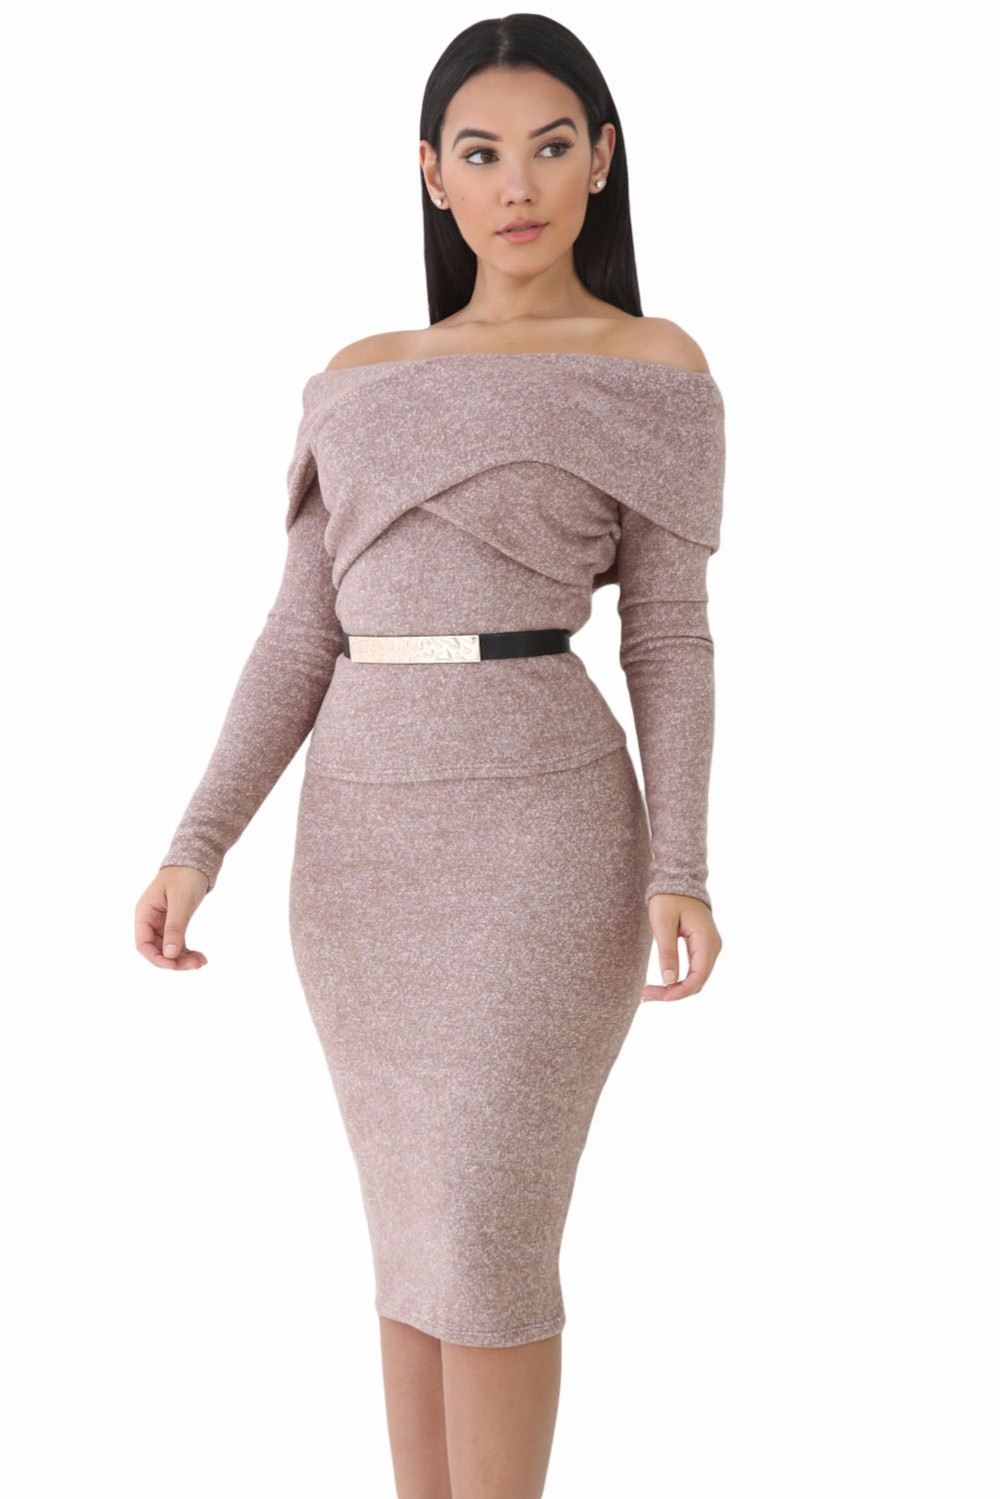 a12ee12f3631e New 2017 Women Sets 2 Piece Bodycon Outfits Heathered Black Brown ...